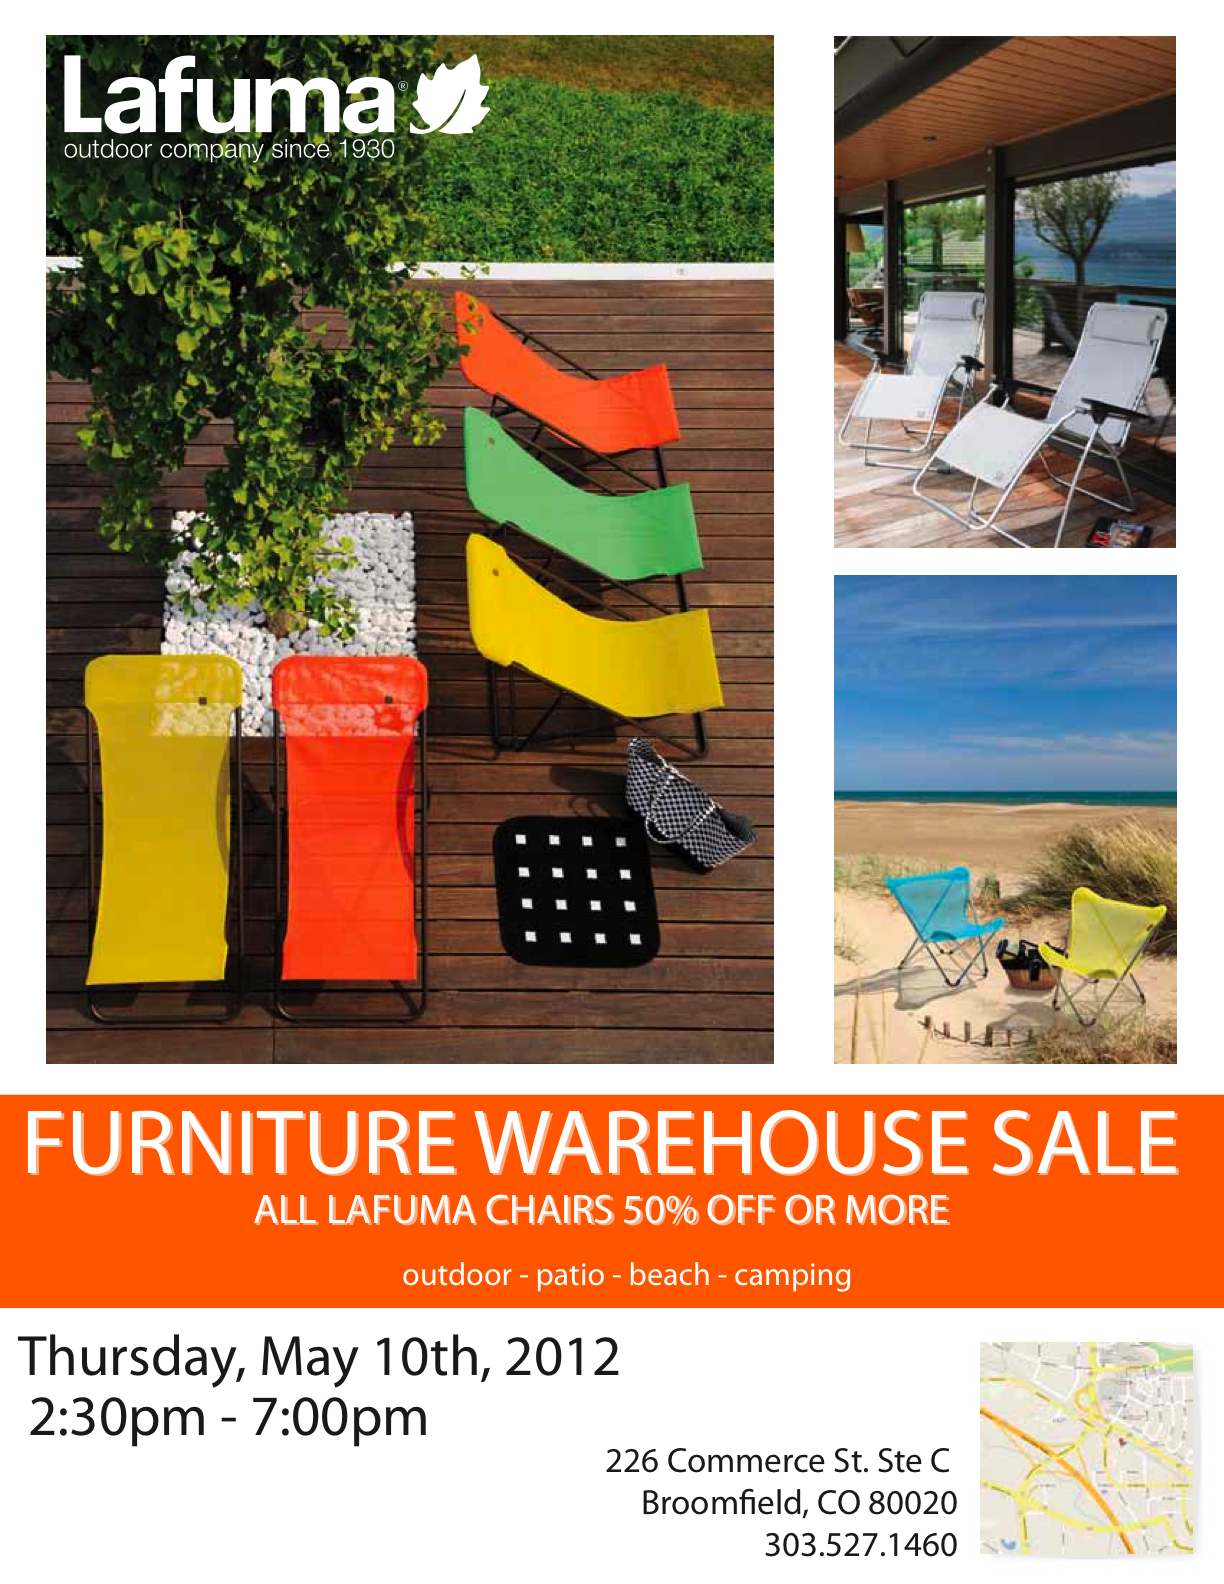 Design Warehouse Sale Denver Lofts Denver Logo Brands Warehouse Sale Sign Up Sm Furniture